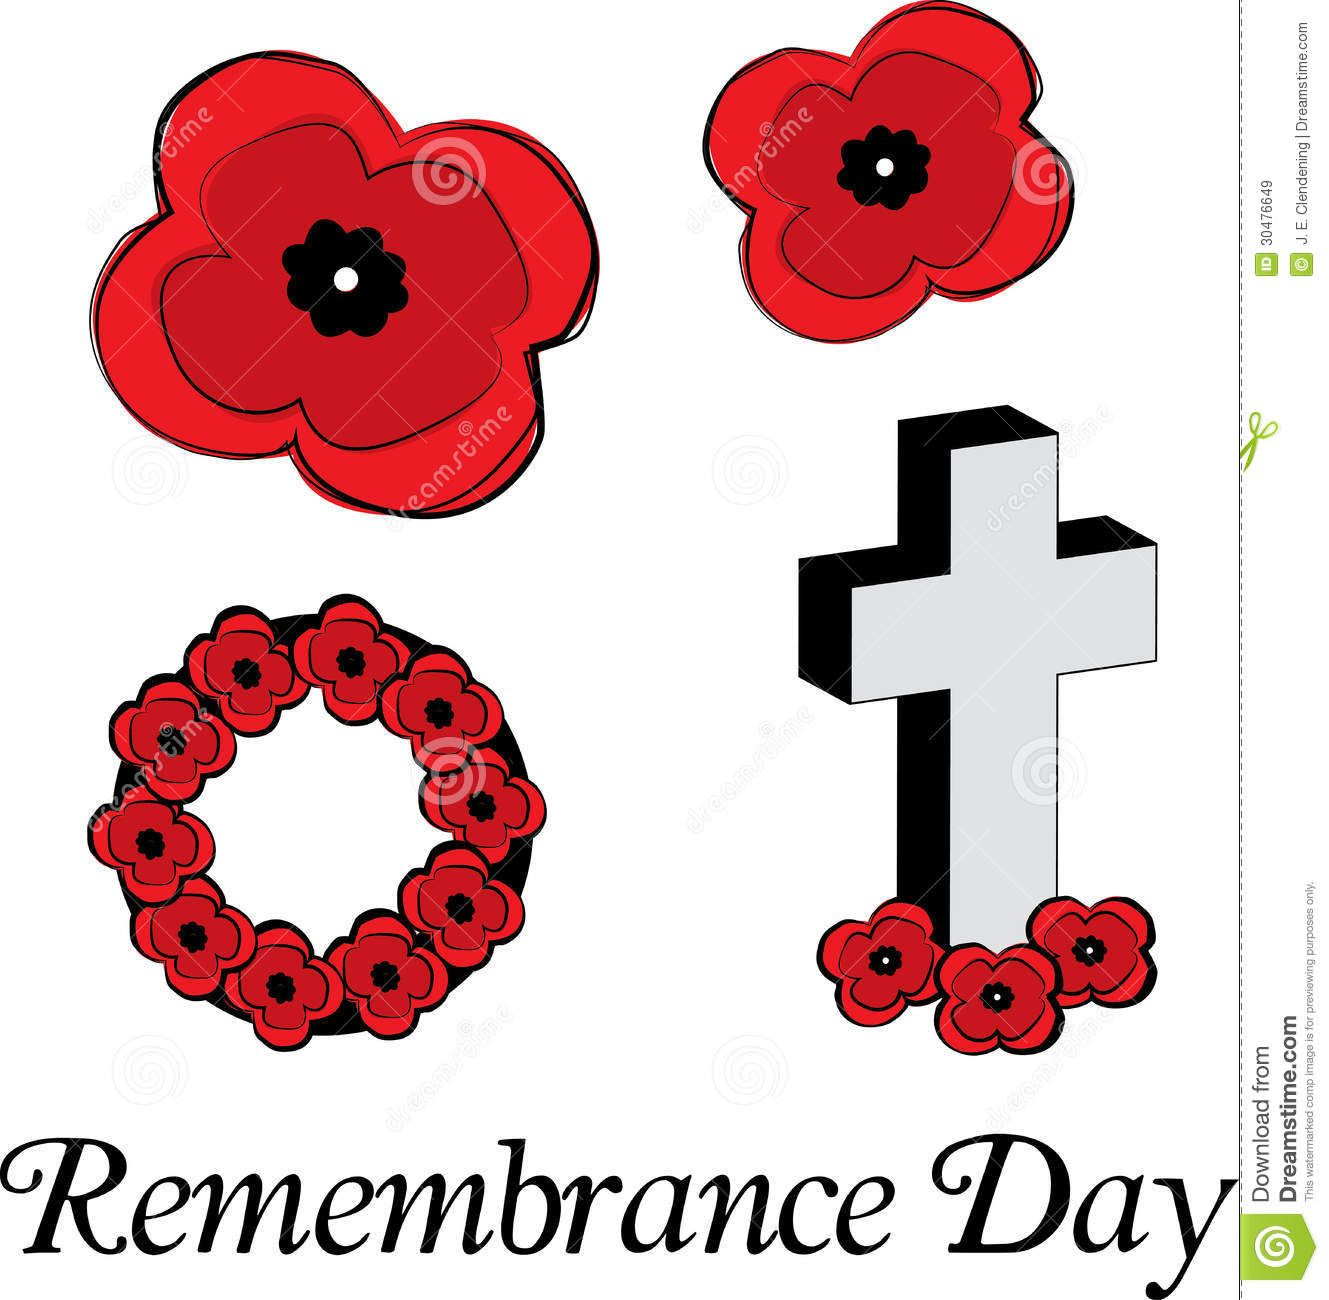 Remembrance day poppy flowers clipart poppies and scottish remembrance day poppy flowers clipart buycottarizona